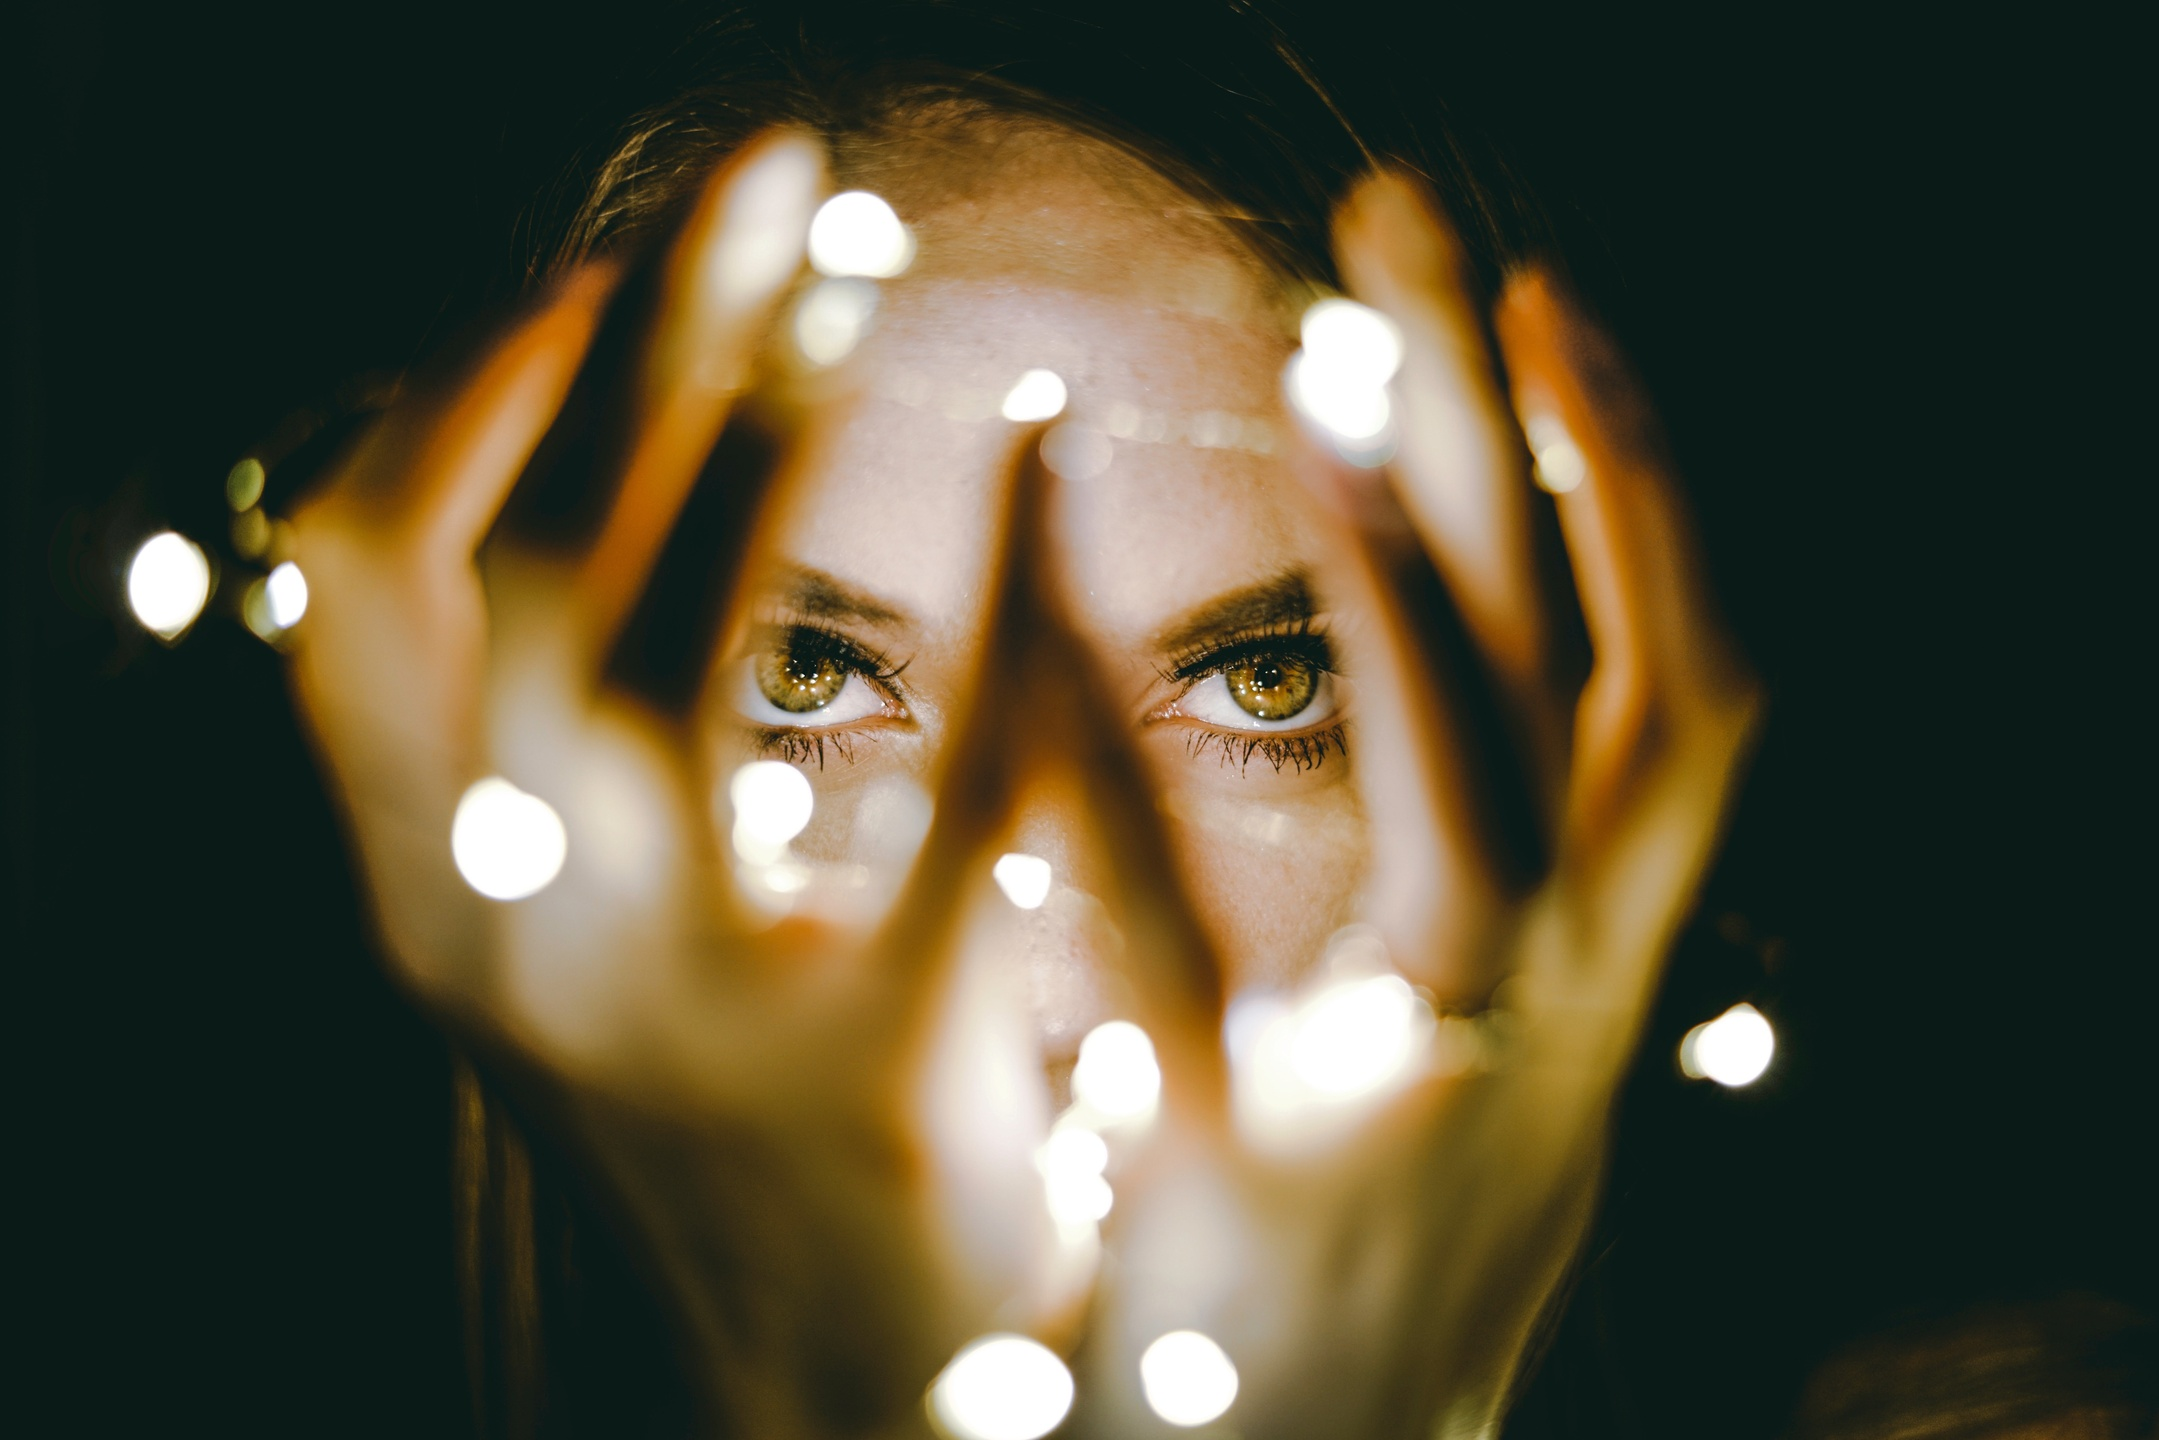 image shows woman holding blurred twinkle lights in front of her face with eyes in focus